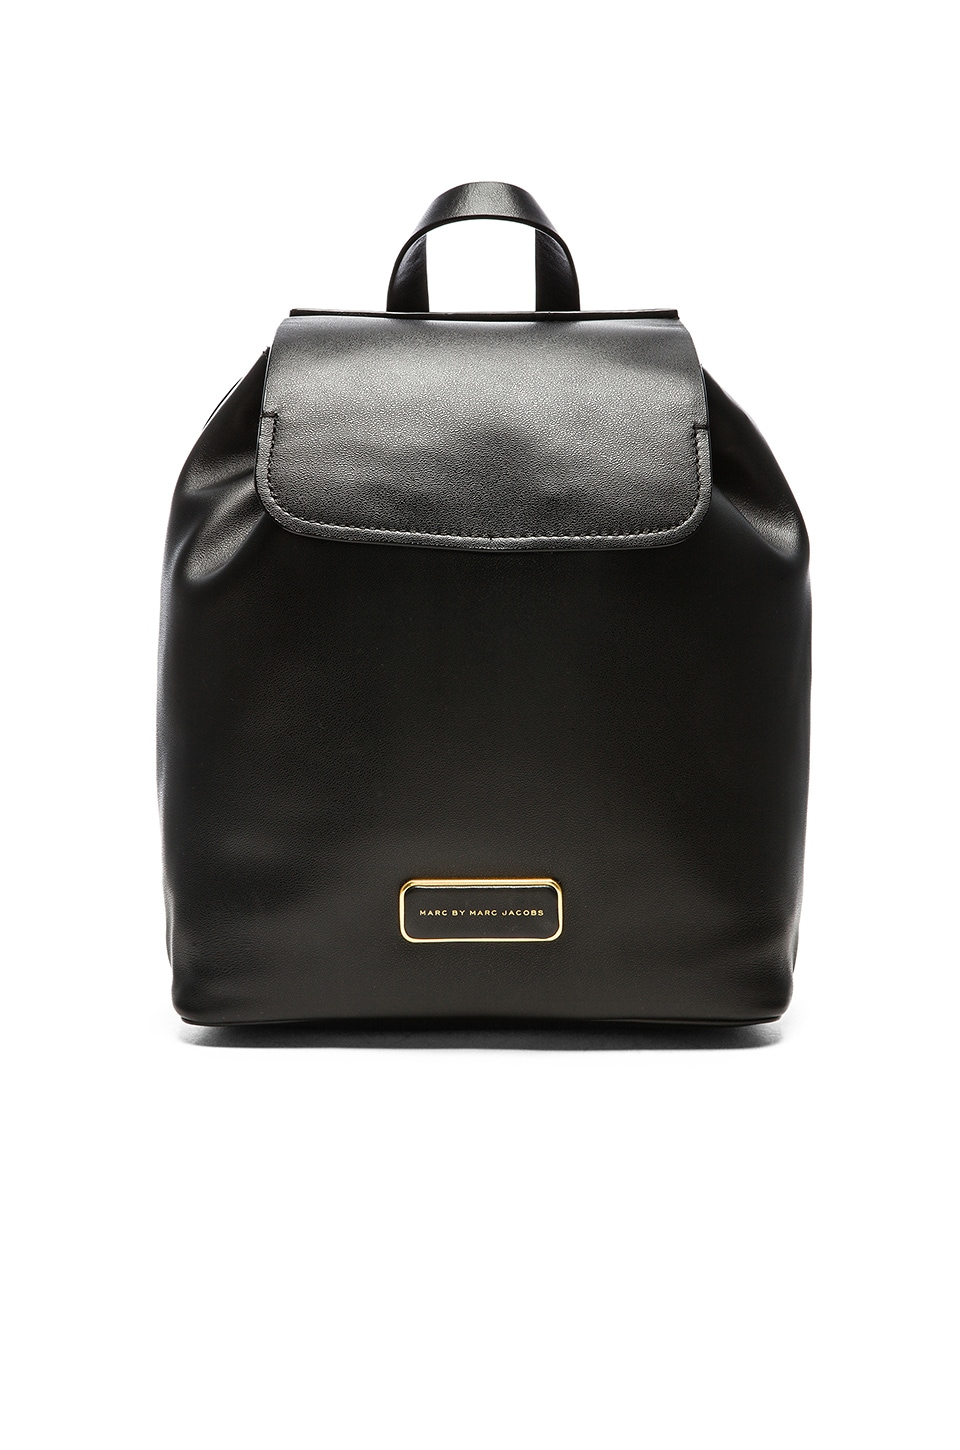 Marc by Marc Jacobs Ligero Backpack in Black